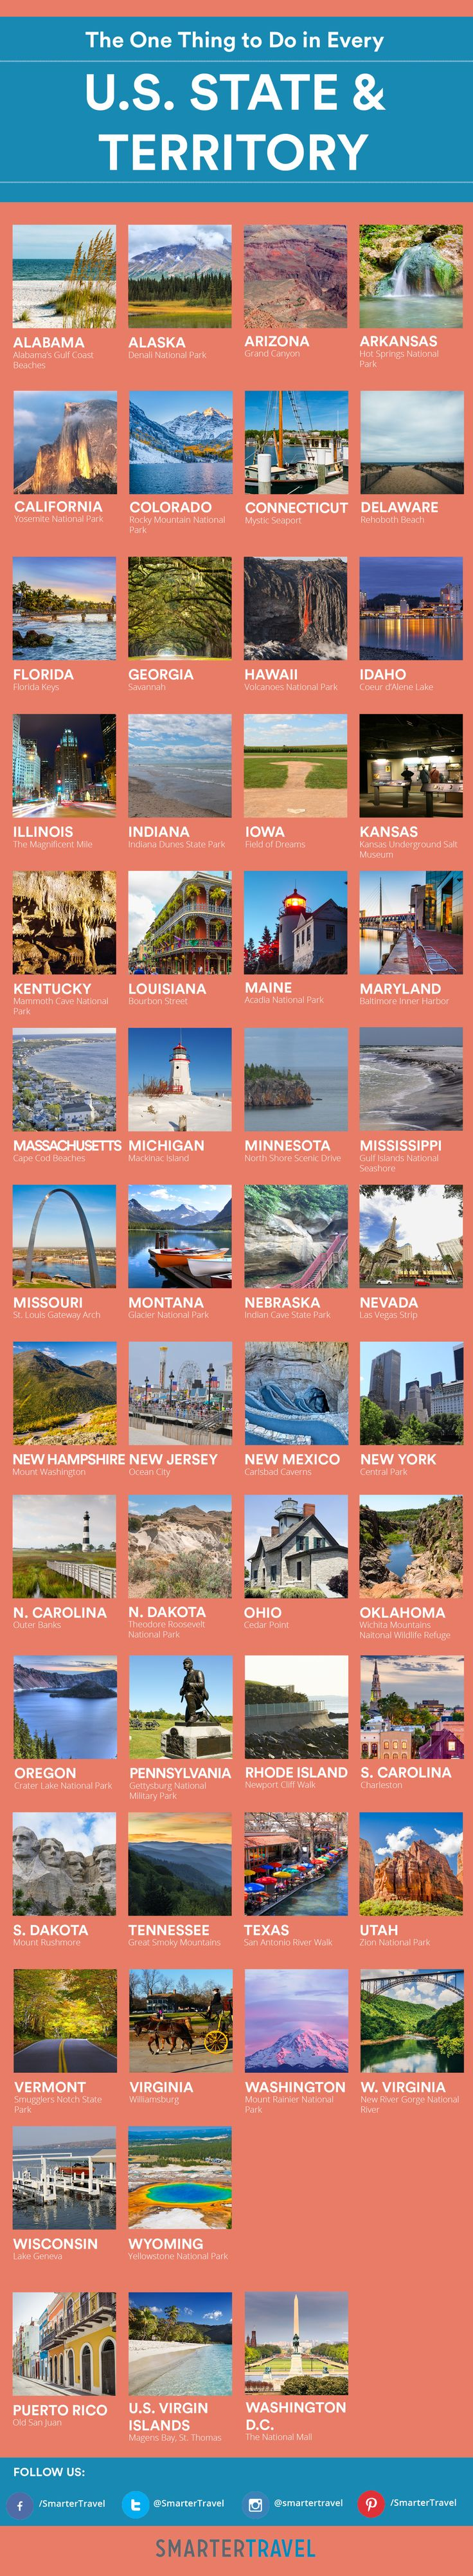 The One Thing You Should Do in Every U.S. State